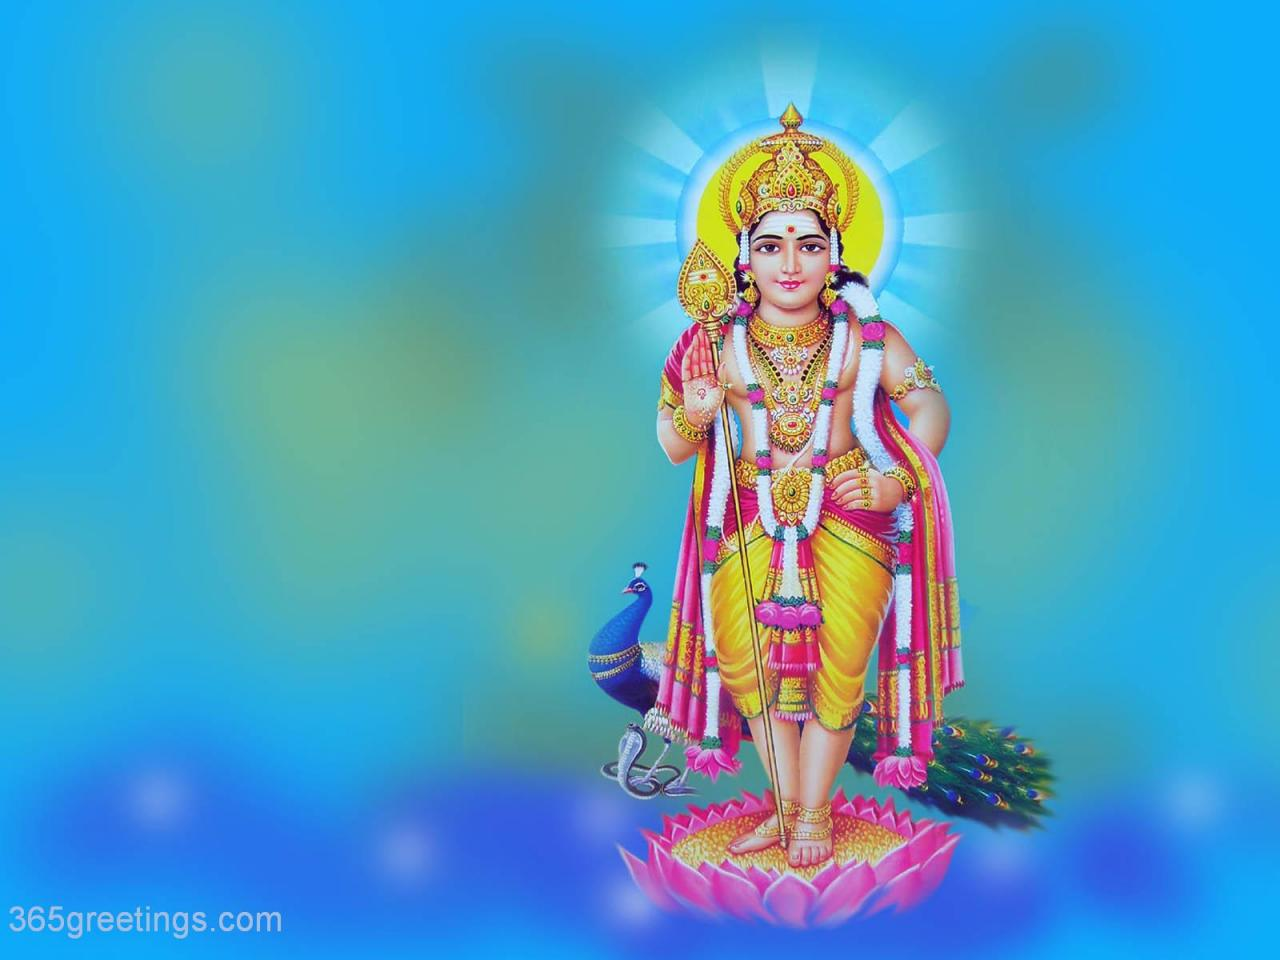 https://4.bp.blogspot.com/-u7z9vI6dmcc/Tlen4X1dxoI/AAAAAAAAAaw/KmVjiK6UxD8/s1600/Lord-Murugan-Wallpapers-14.jpg